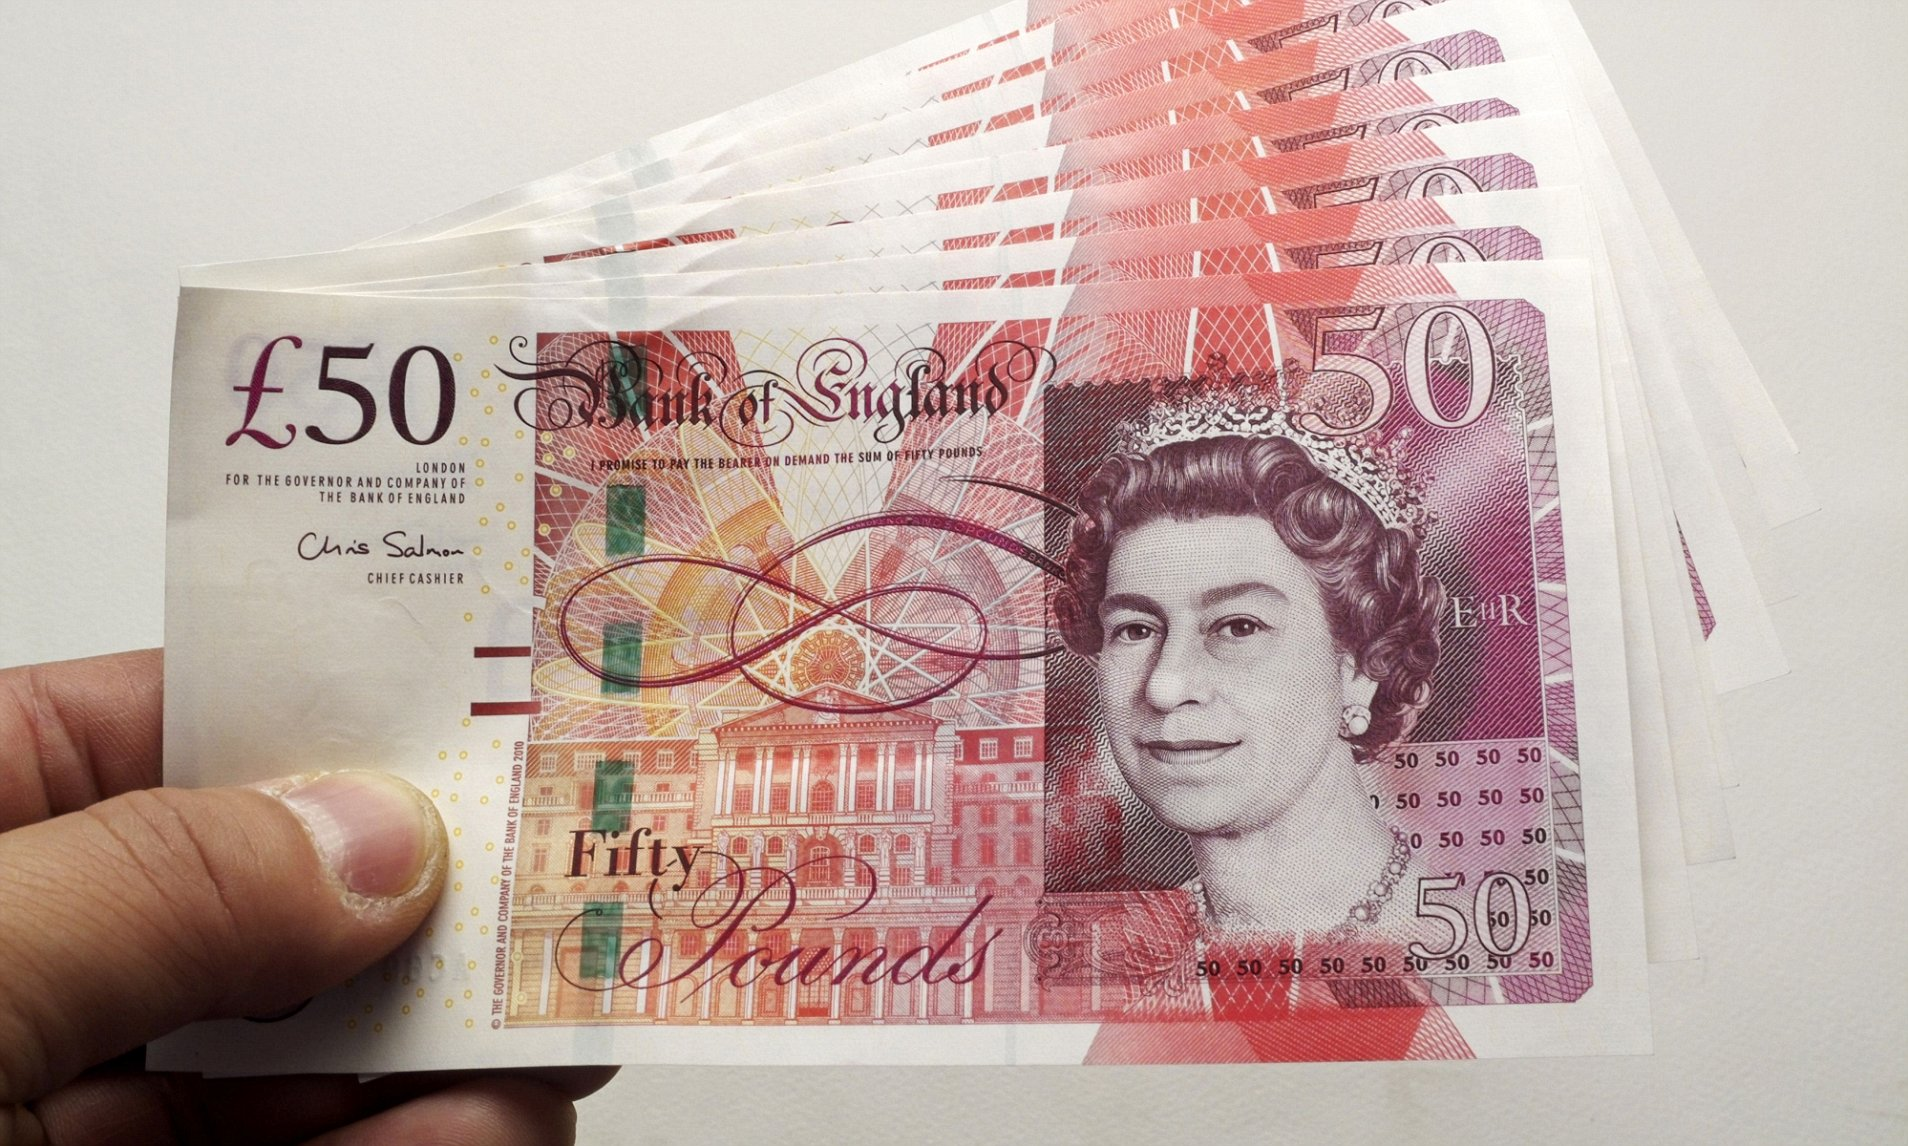 50*50 Can Shops Legally Refuse £50 Notes? | This Is Money